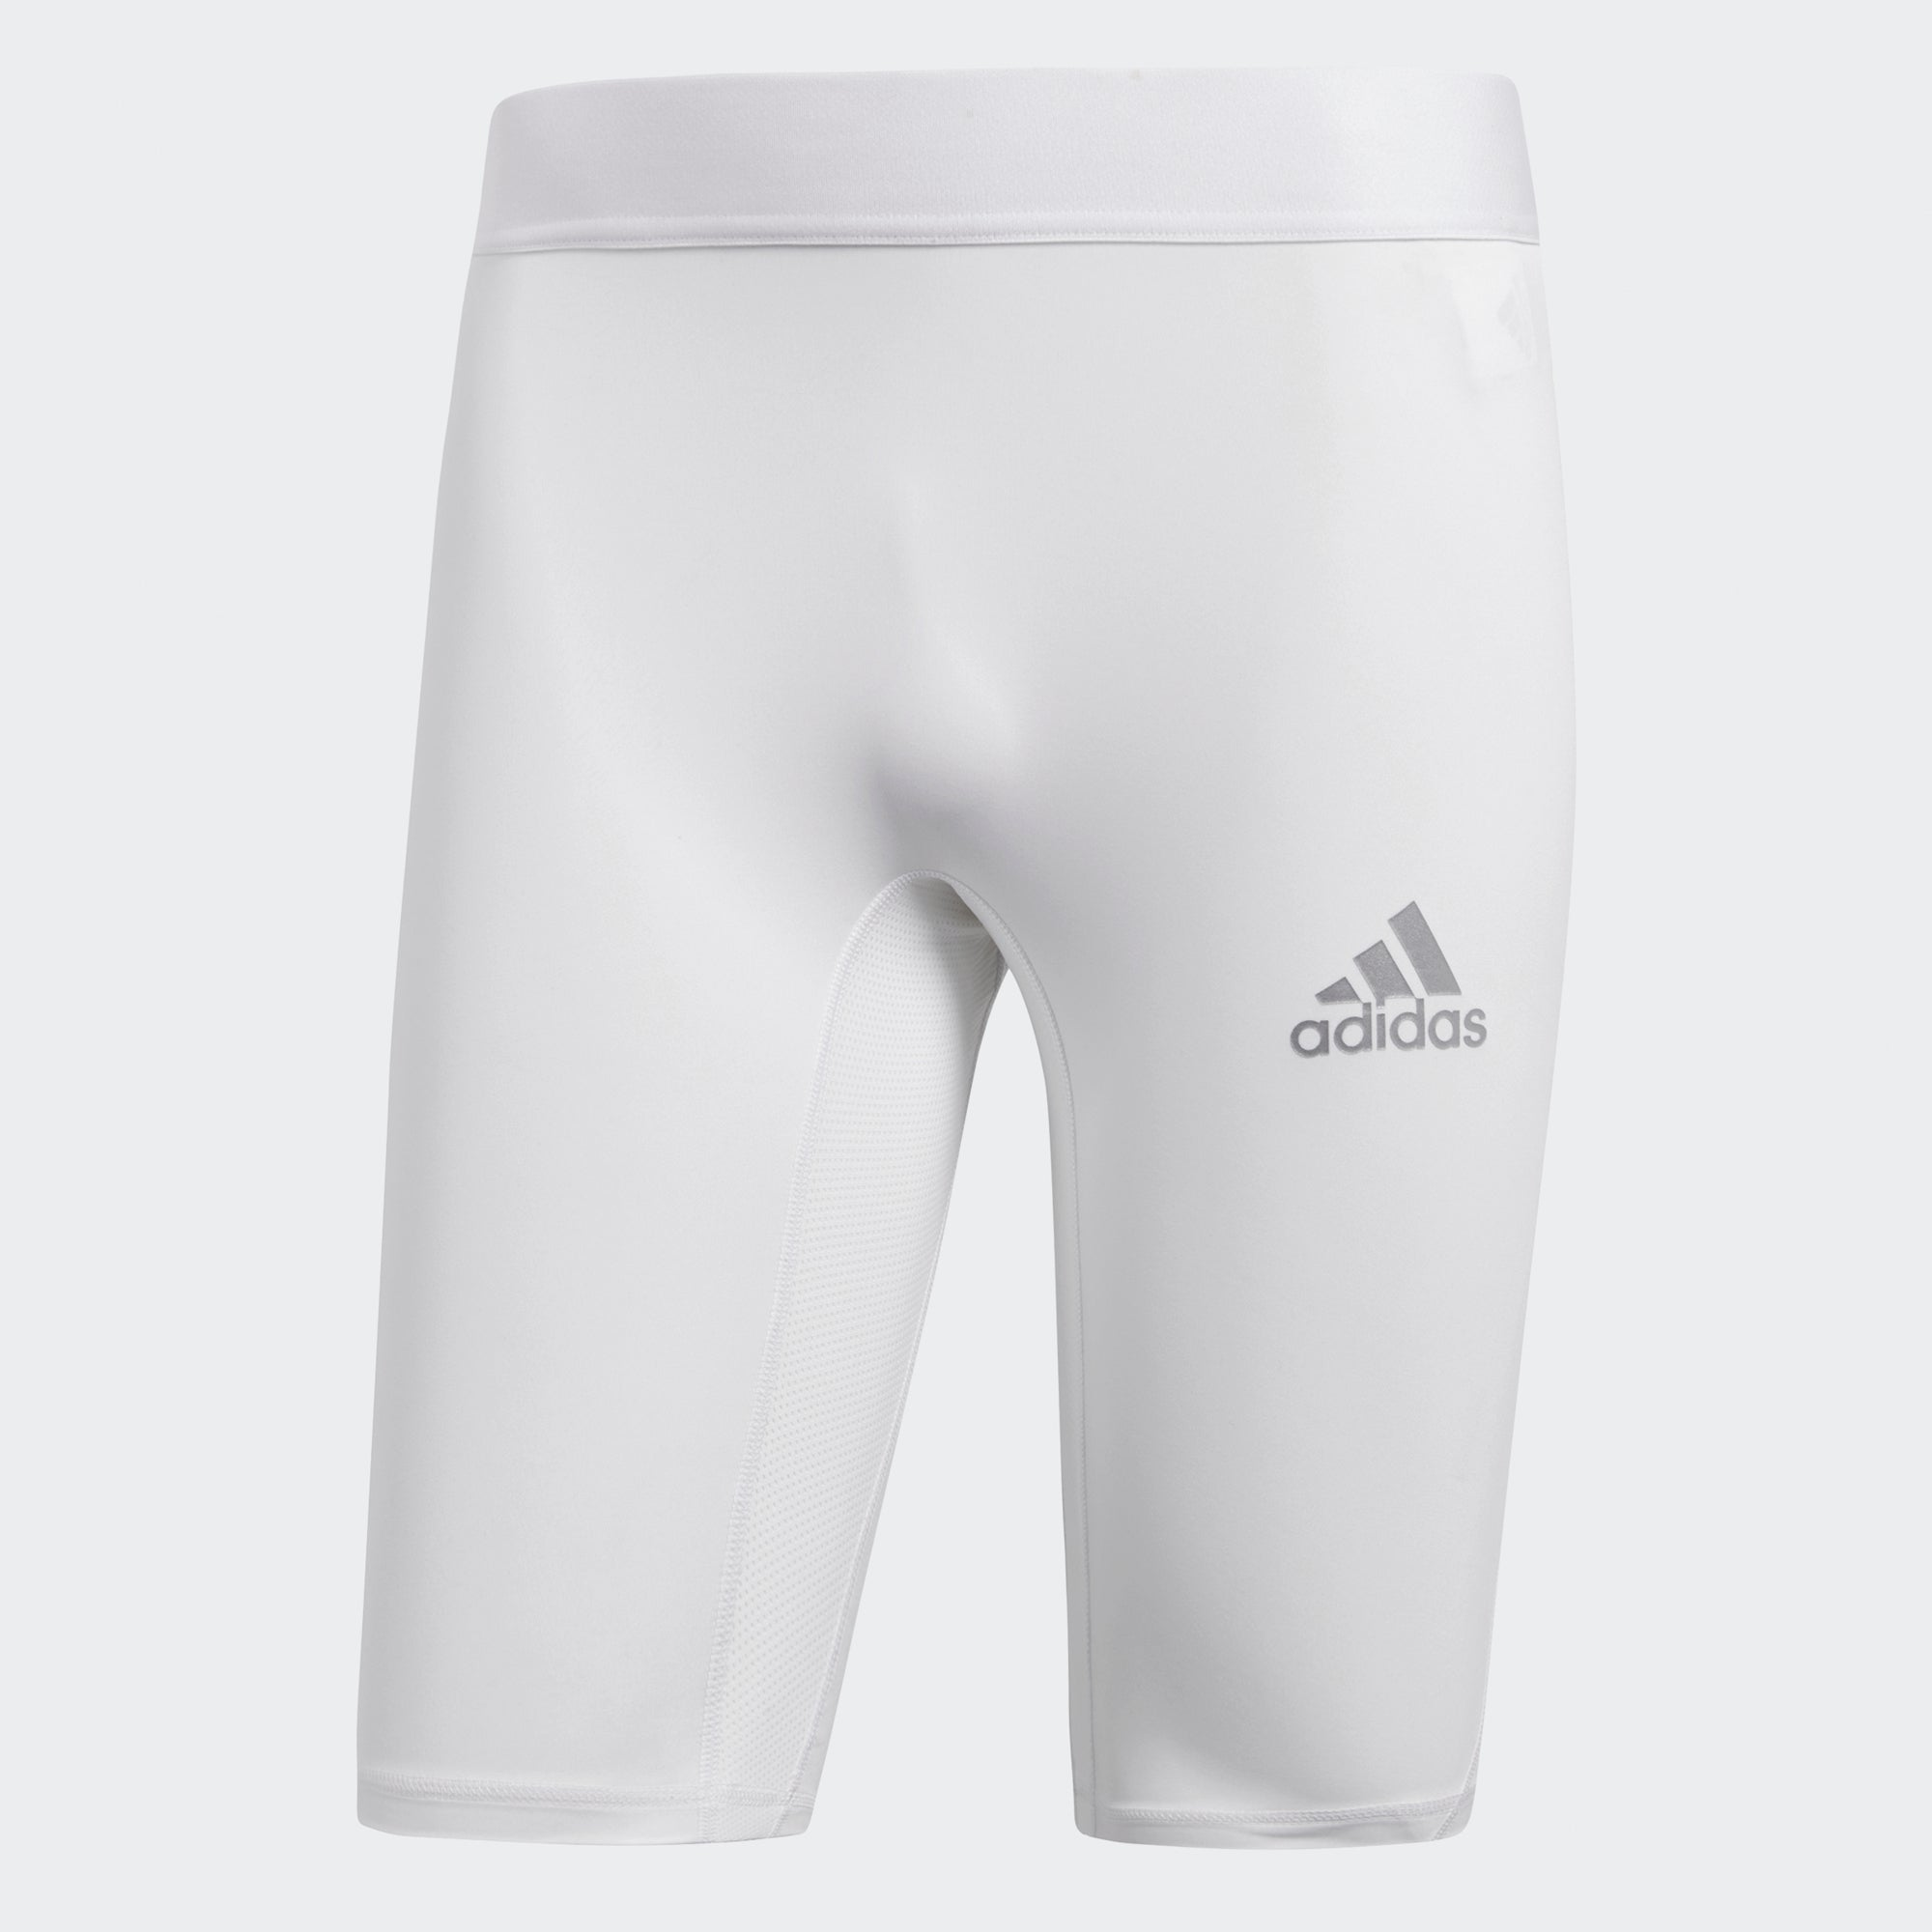 newest cef03 99995 Adidas - Mens Adidas Alphaskin Sport Short Tights - La Liga Soccer